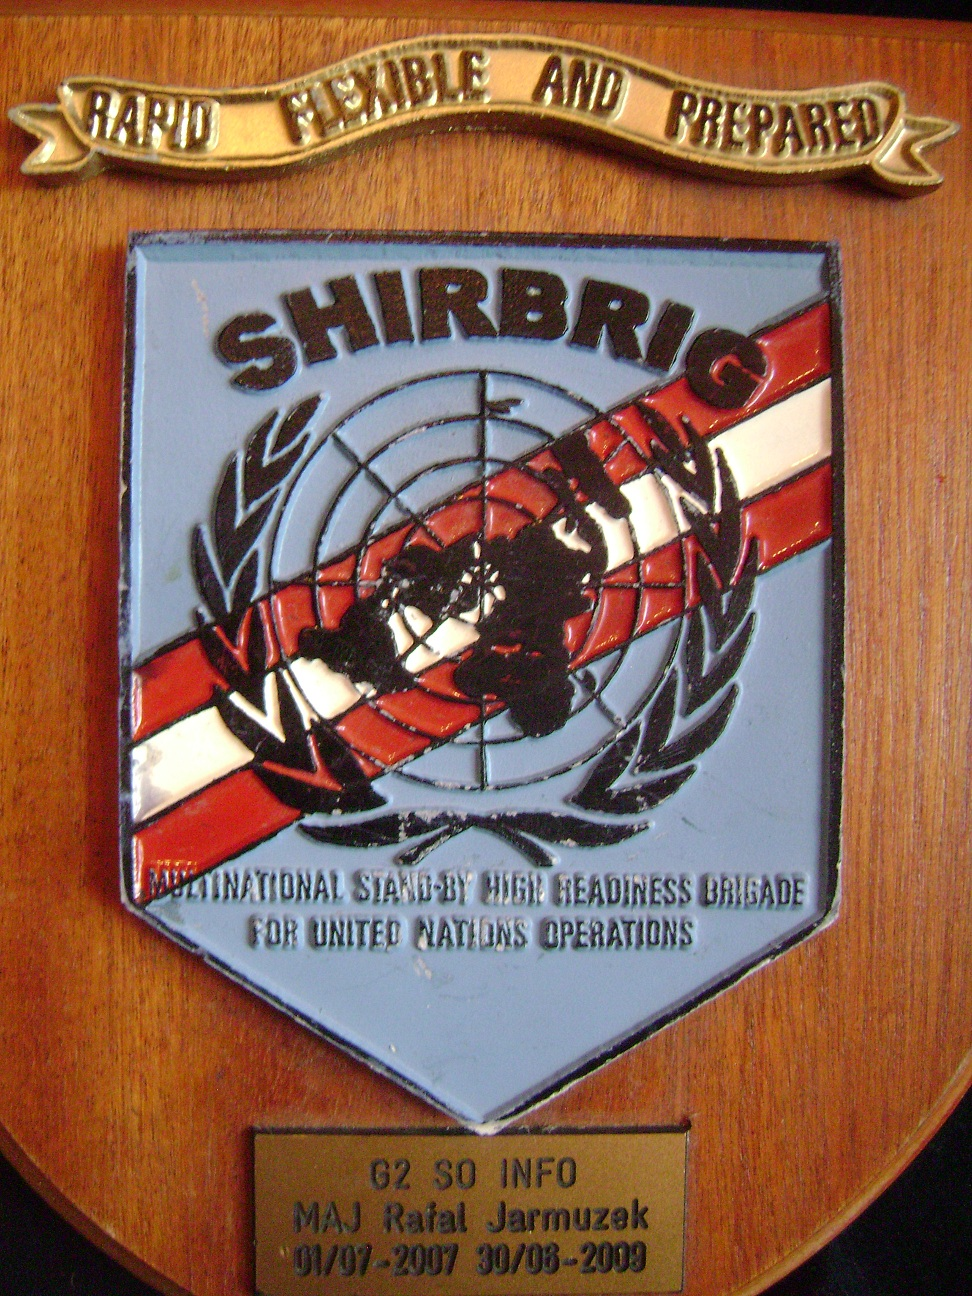 Plaketa_Shirbrig_Brigade_United_Nations_2.JPG